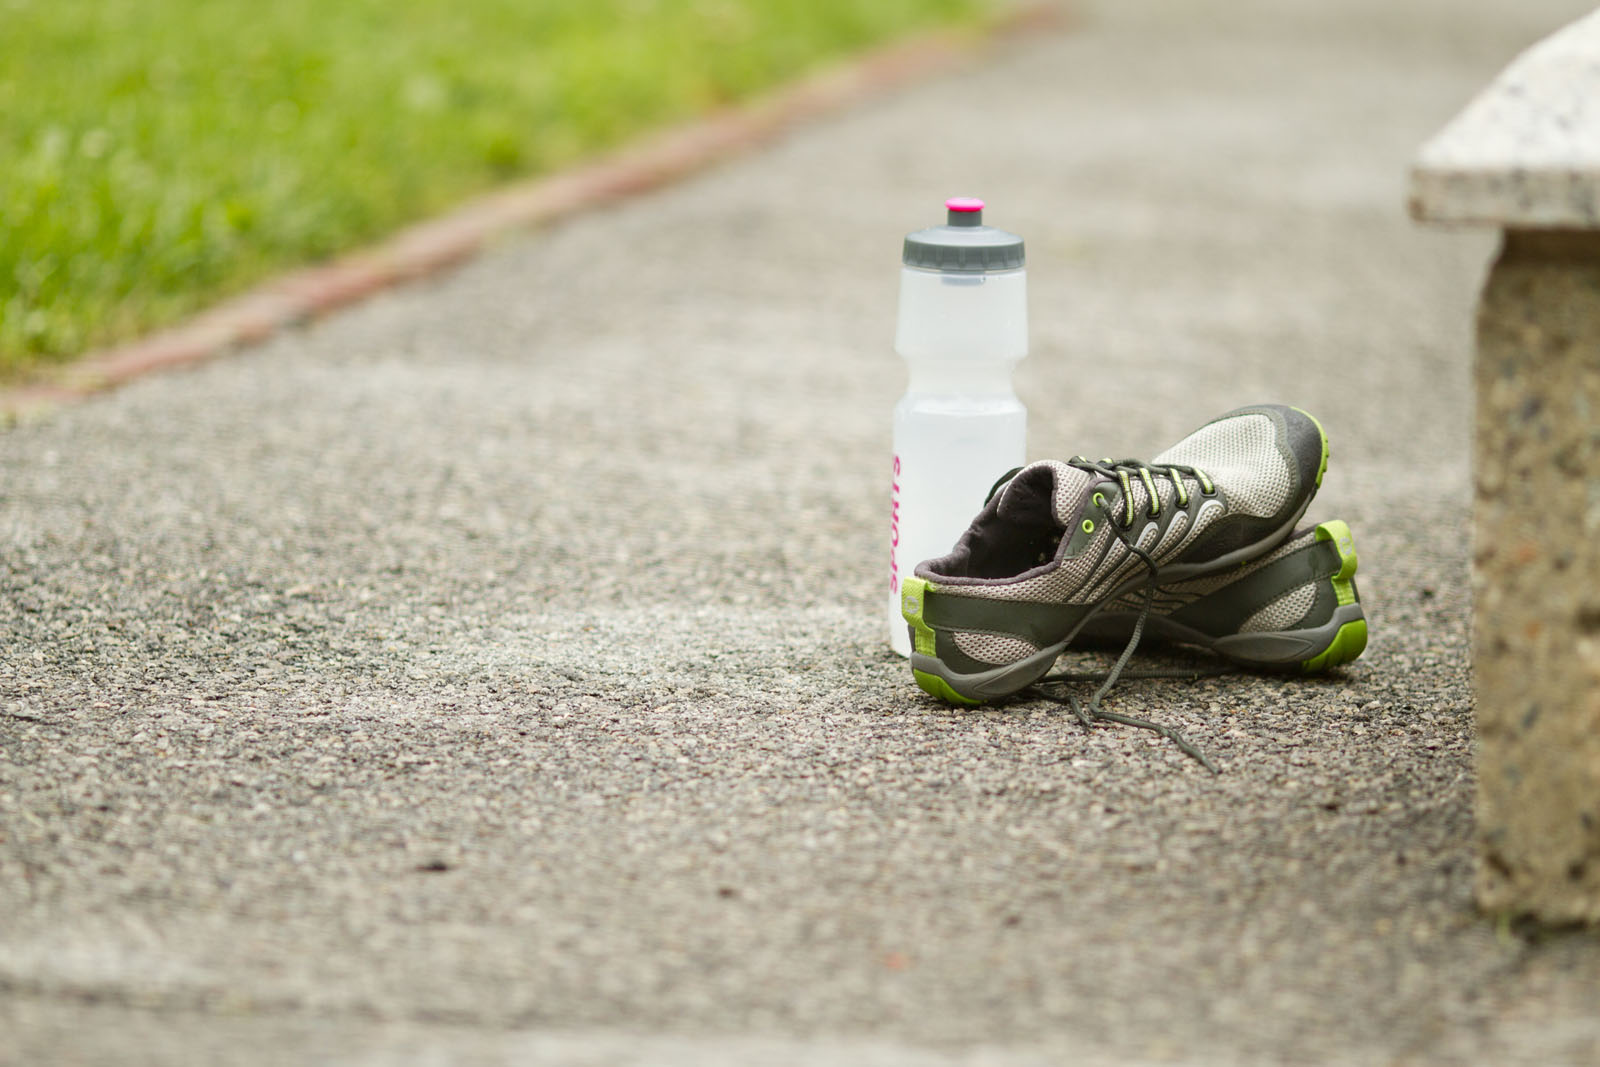 Water bottle and running shoes.